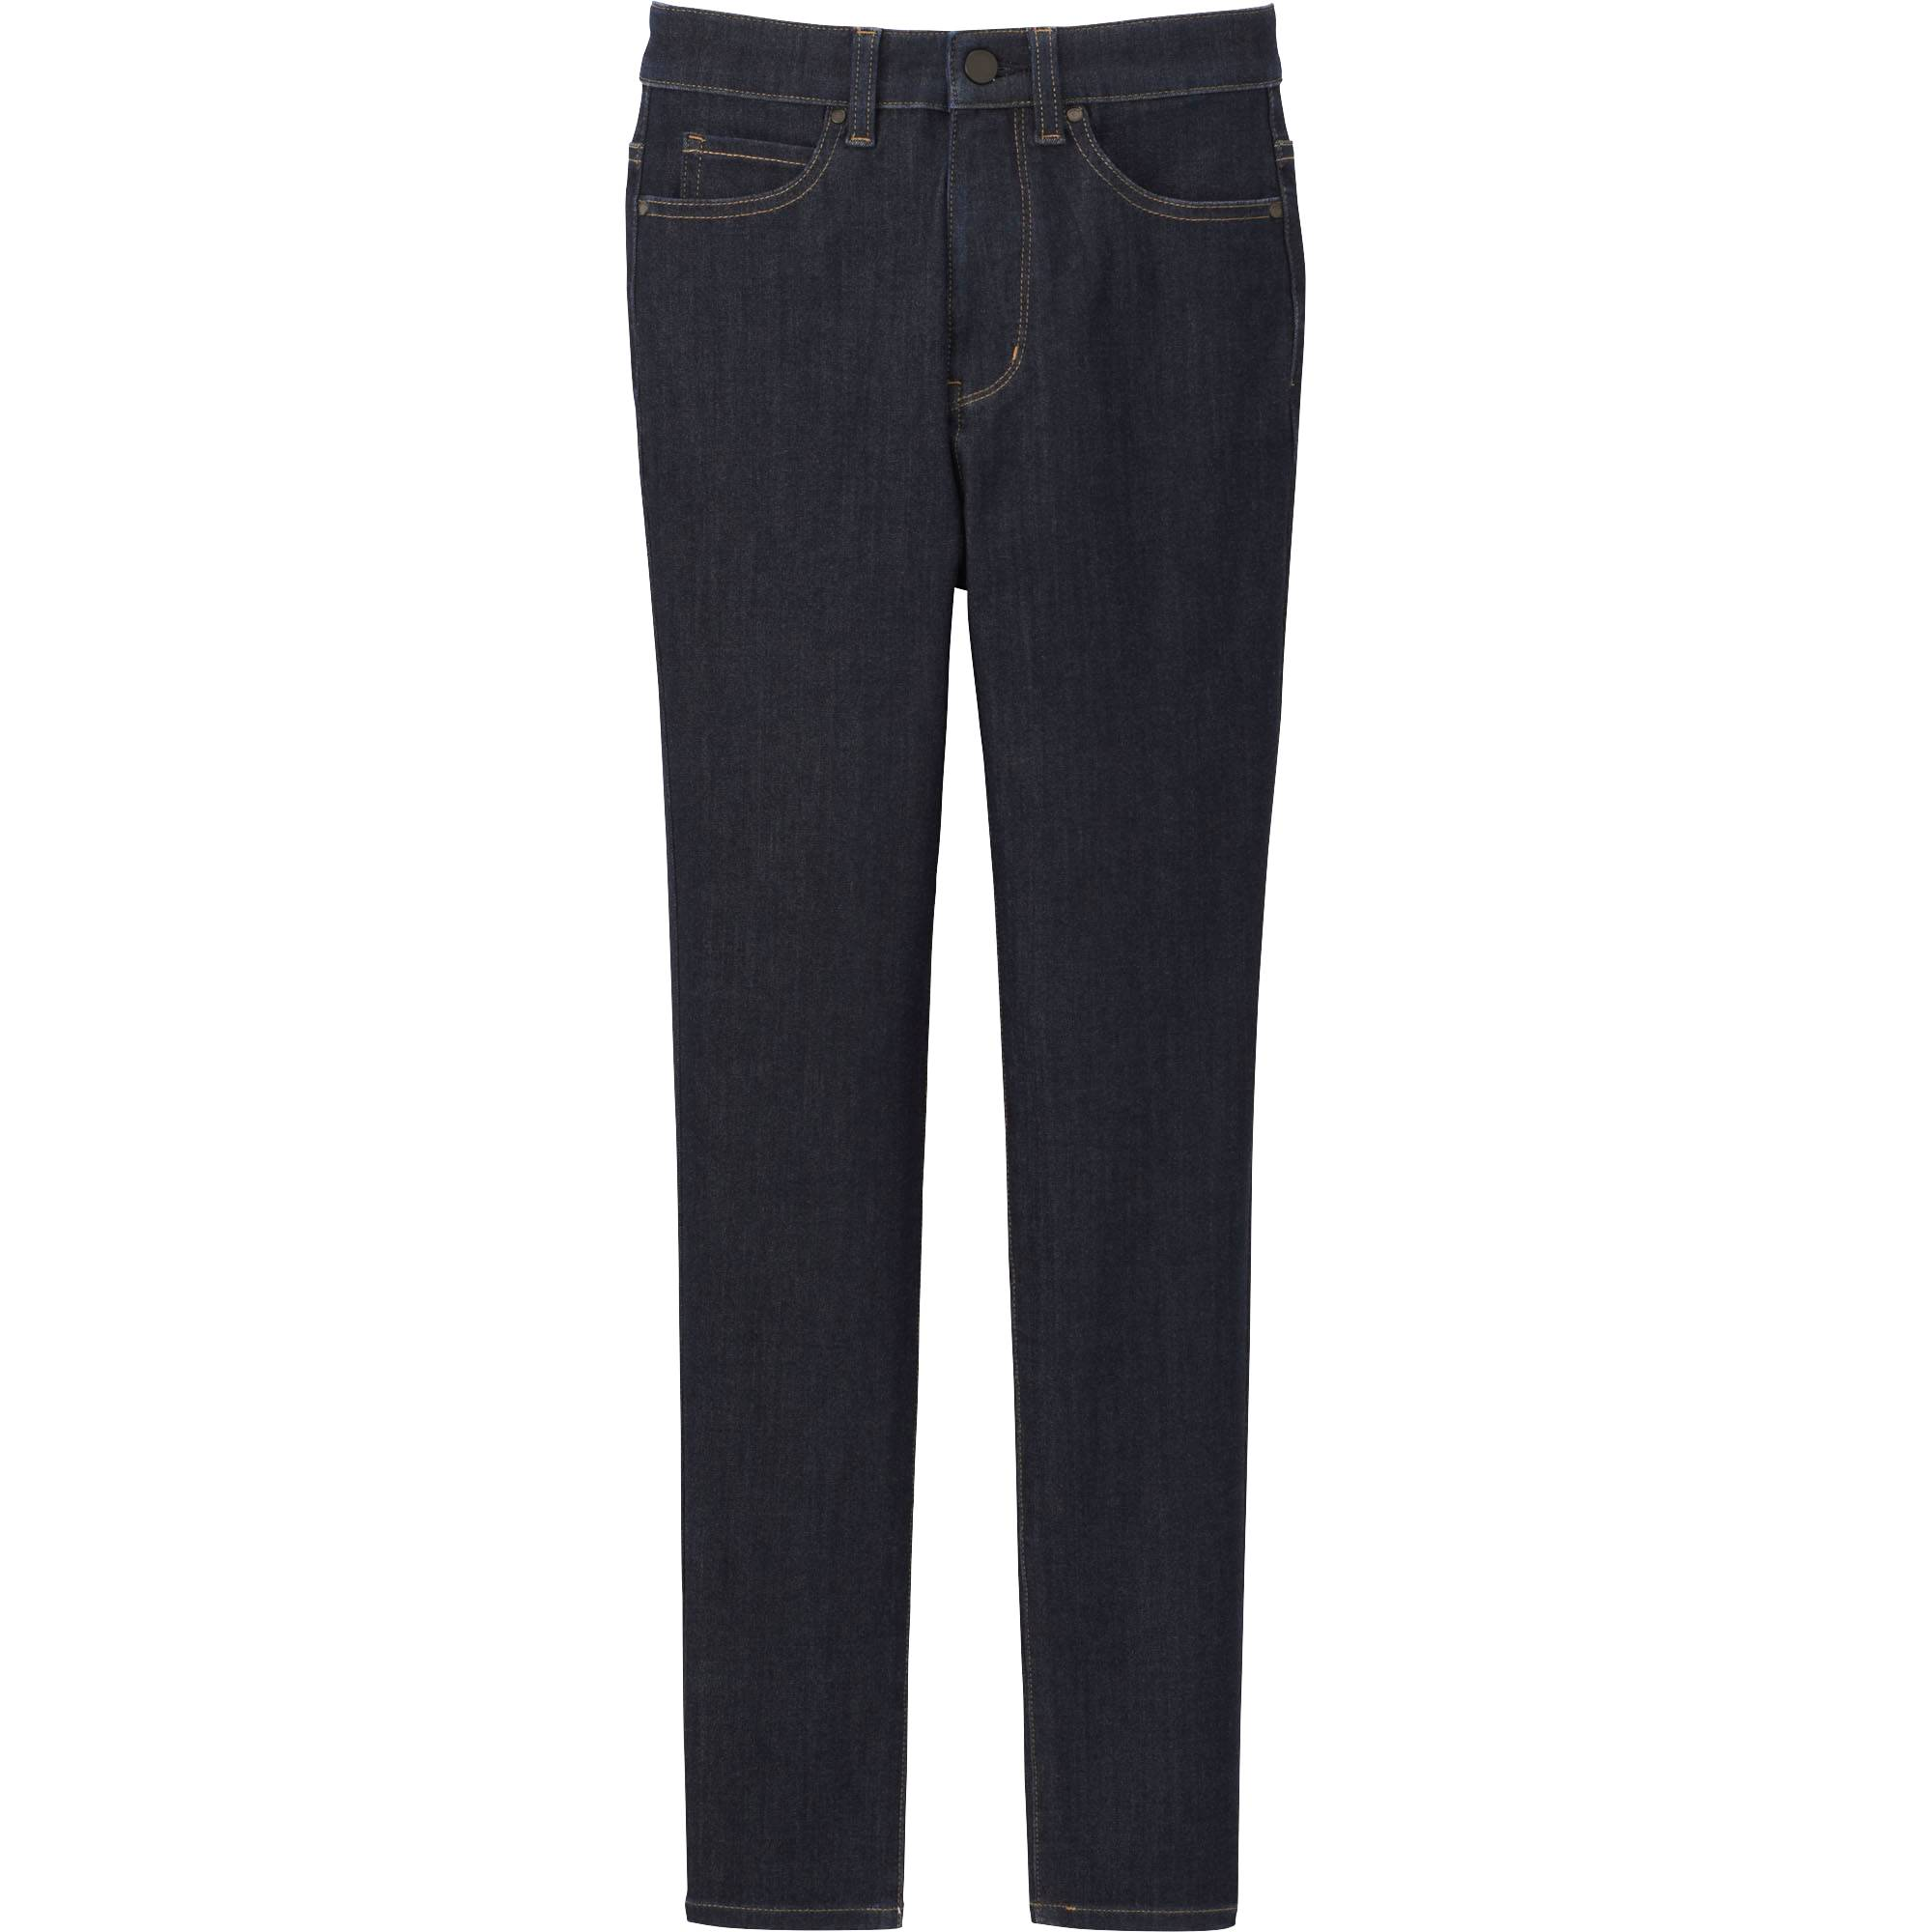 WOMEN ULTRA STRETCH HIGH RISE ANKLE JEANS | UNIQLO US